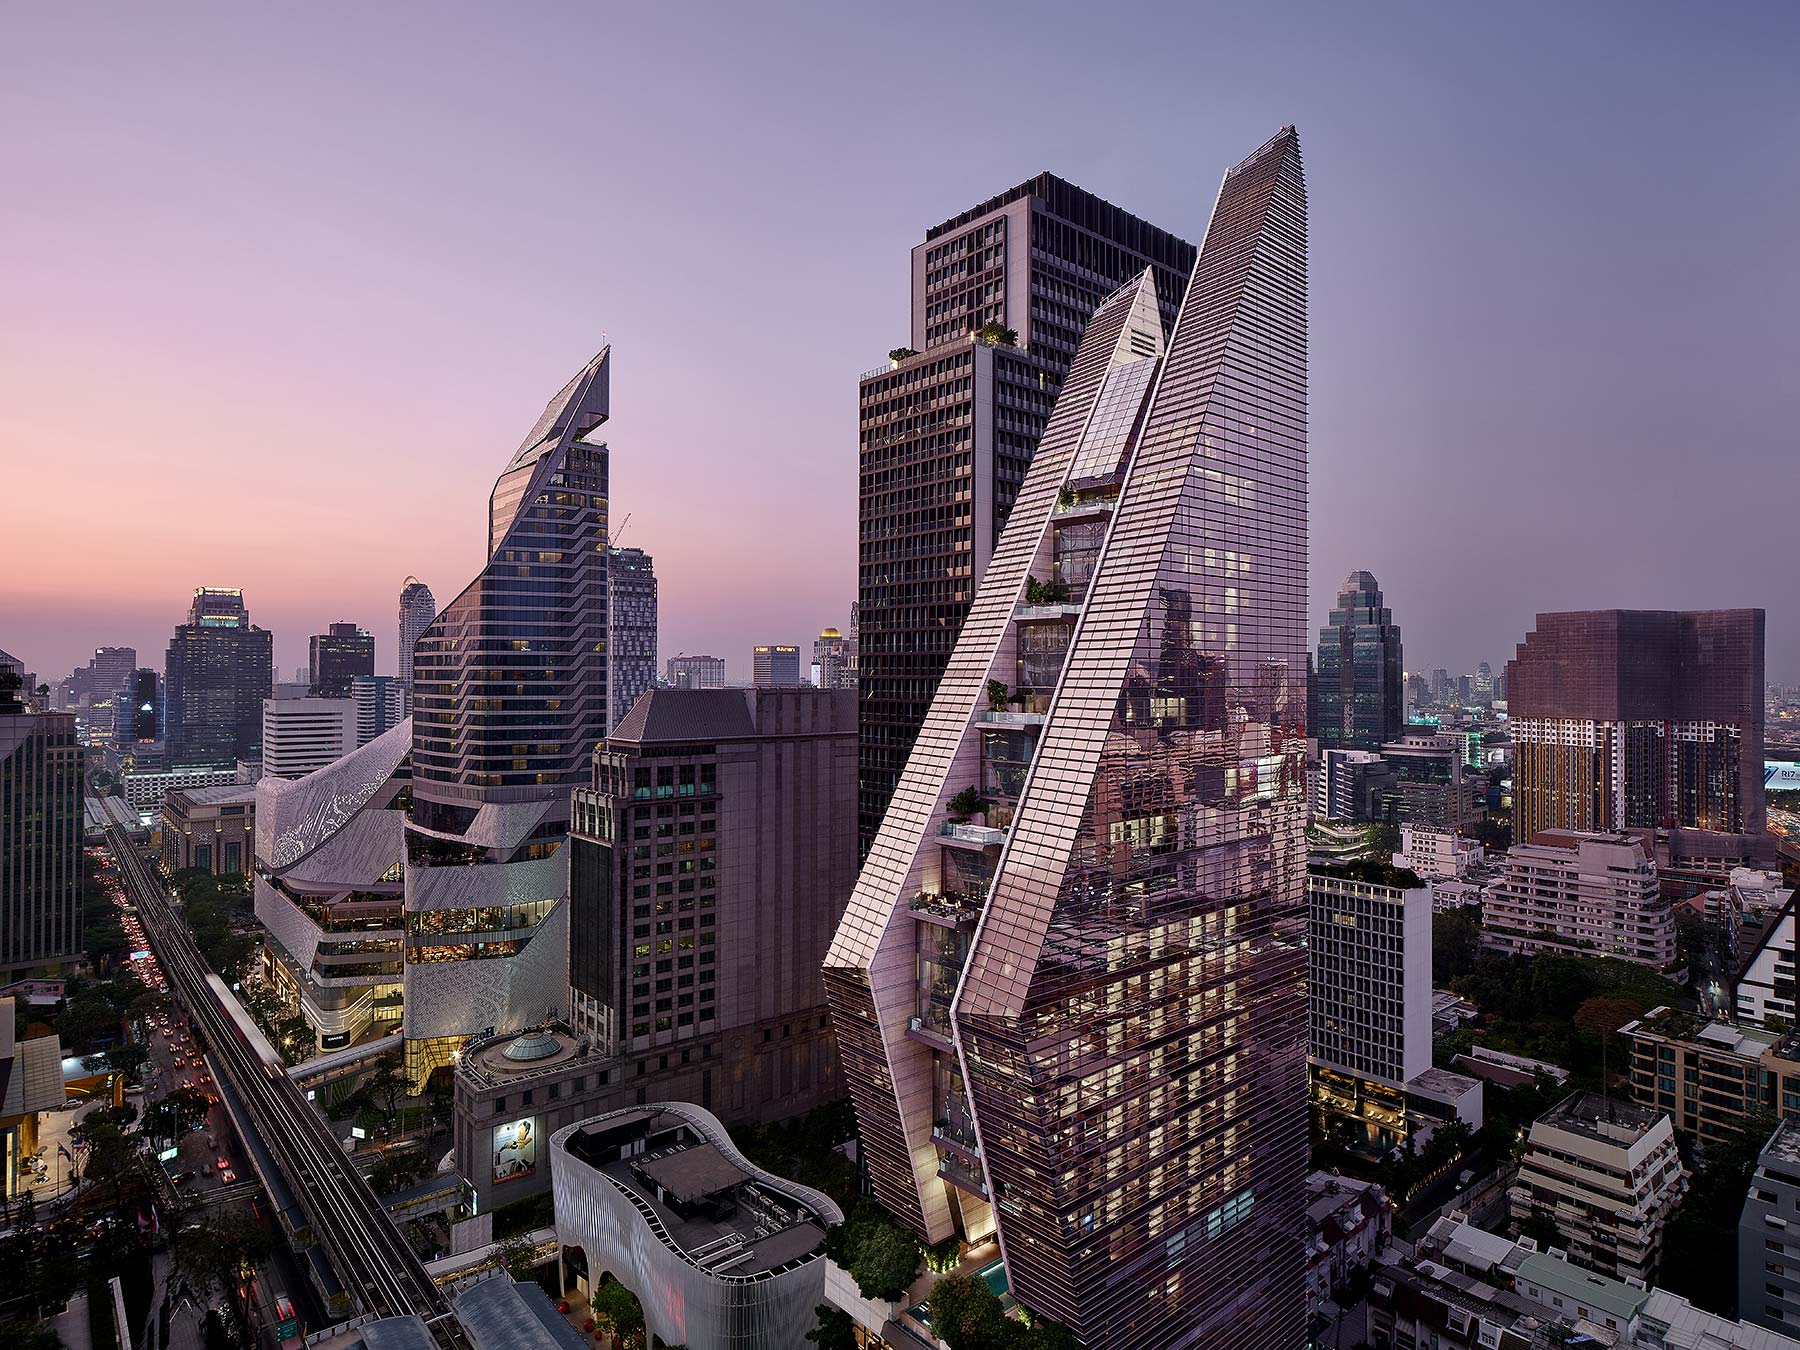 Rosewood Hotel, Bangkok, Thailand. Architectural photographer Asia